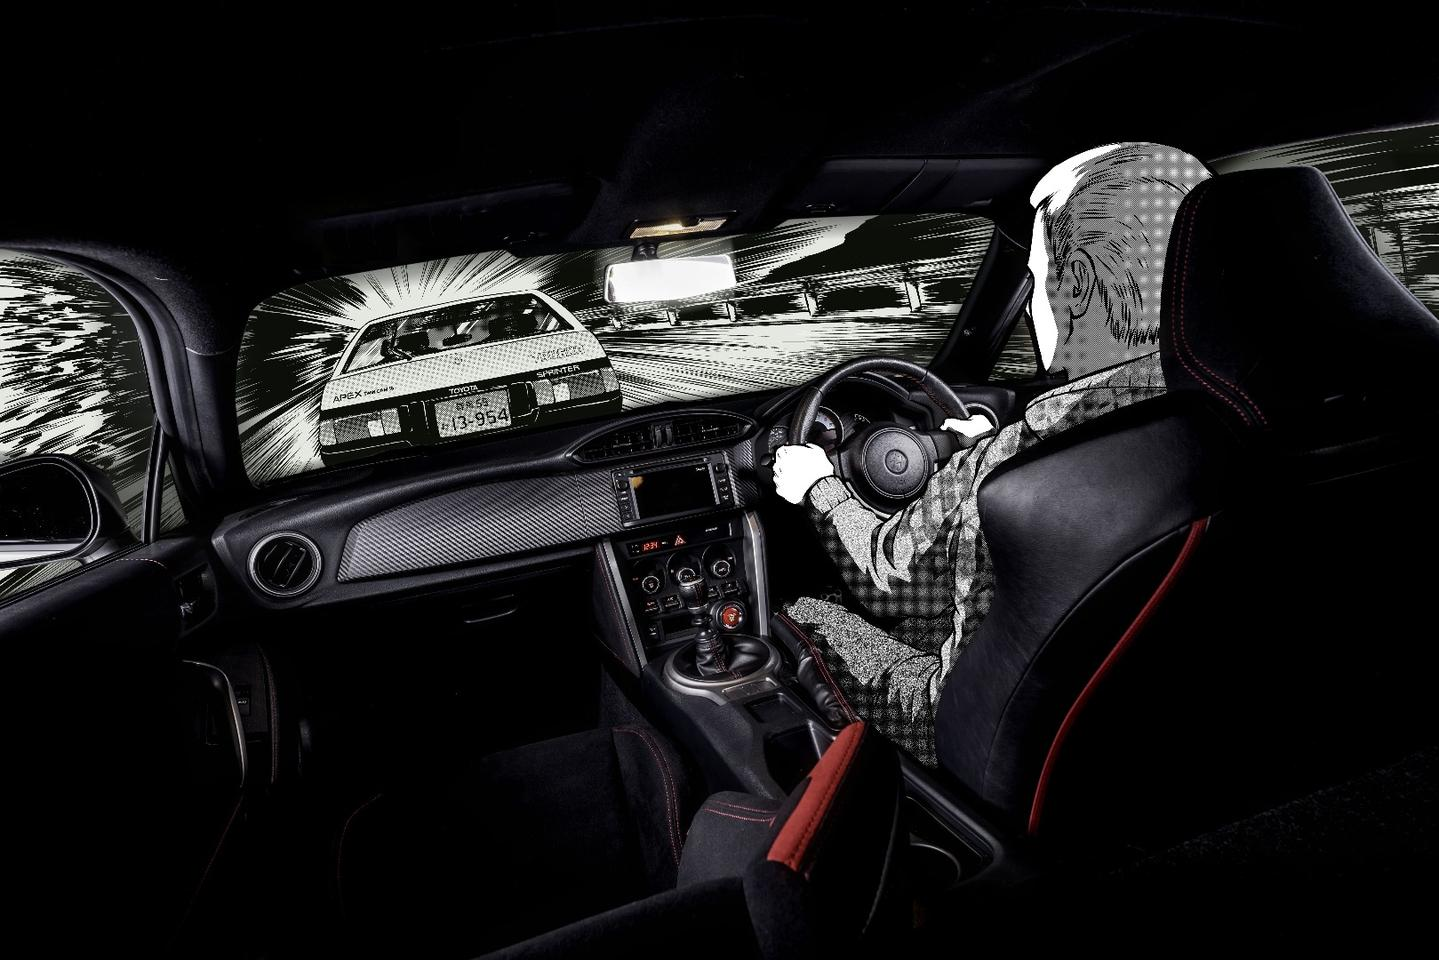 The GT86 has been inserted into a manga scene by a UK artist